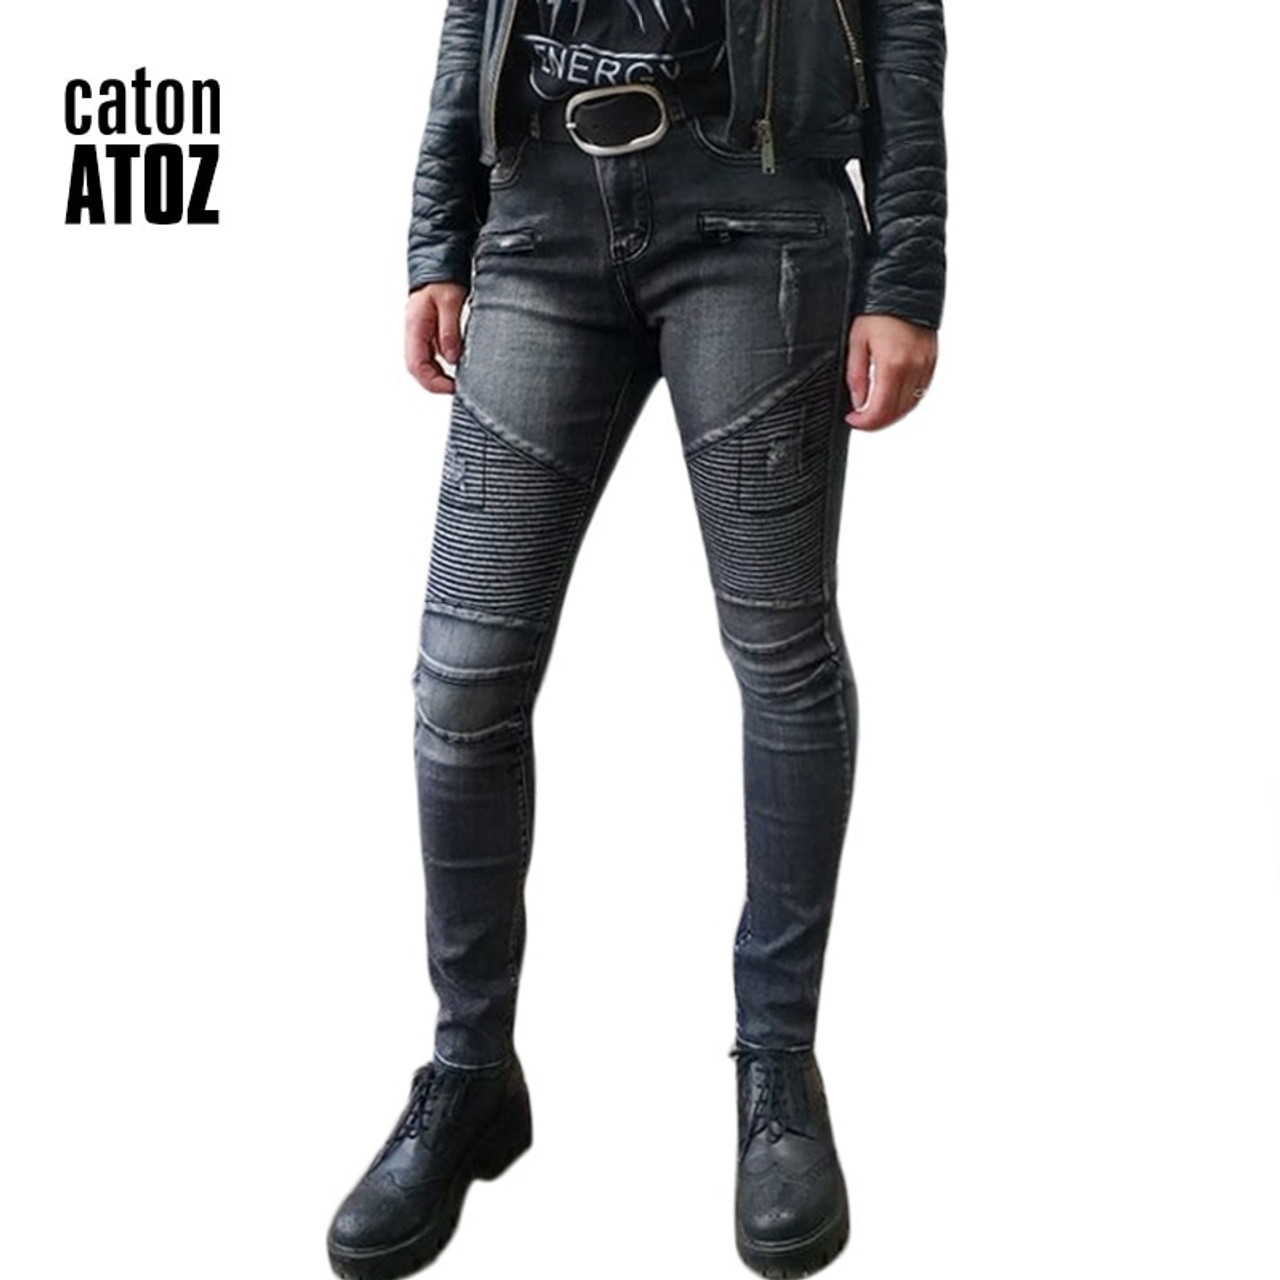 81bc3258946 catonATOZ 2168 Women Fashion Black Punk Motor Biker Jeans Women`s Stretch  Slim Fit Ripped ...